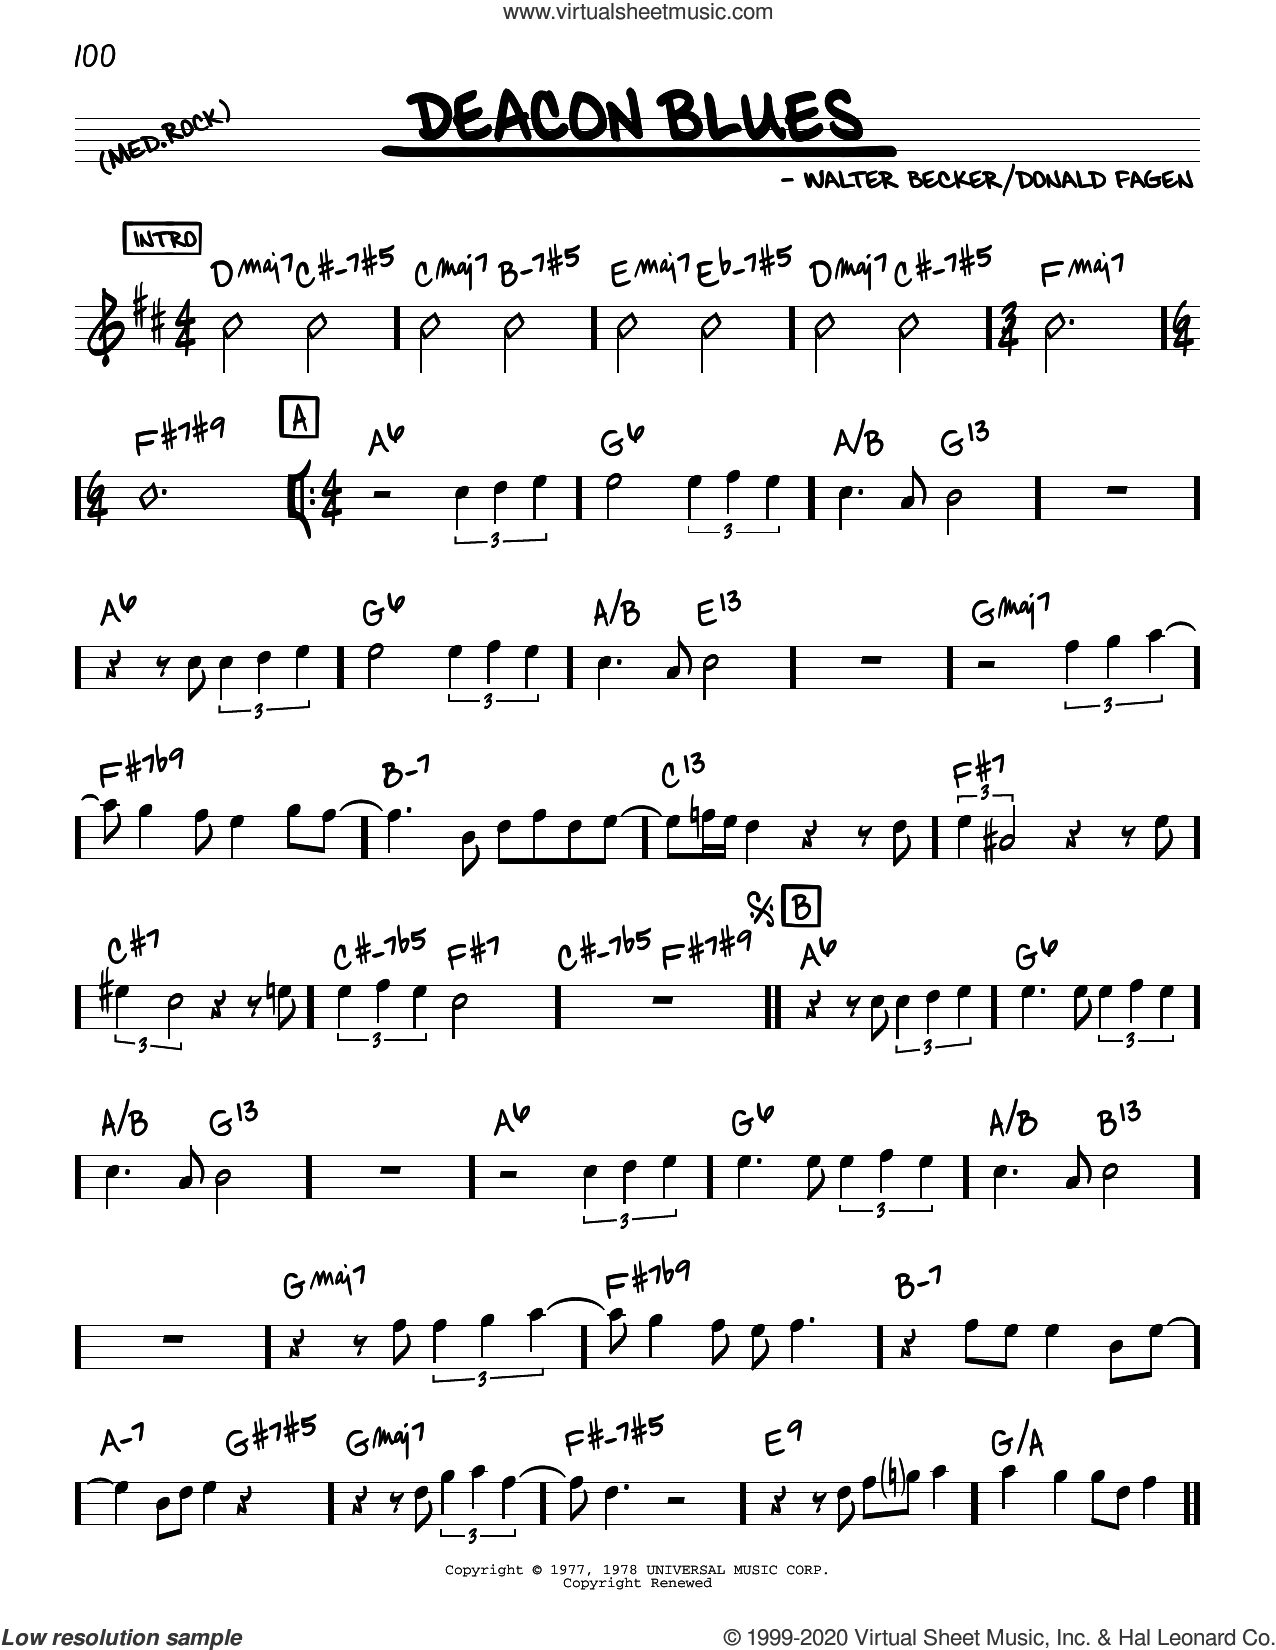 Deacon Blues sheet music for voice and other instruments (real book) by Steely Dan, Donald Fagen and Walter Becker, intermediate skill level